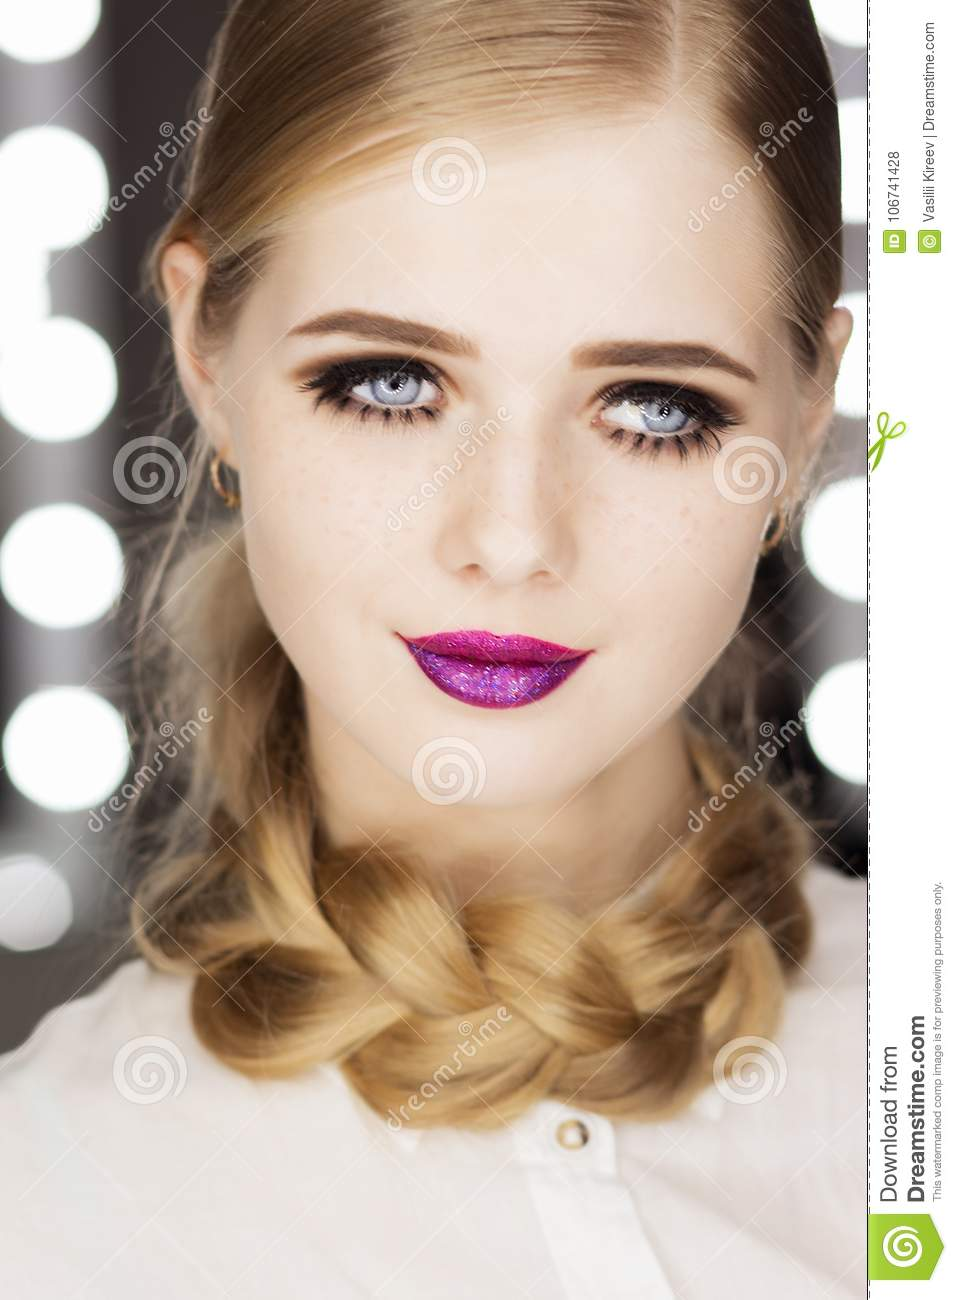 Beautiful Glamour Girl With Short Blonde Hair Stock Photo Image